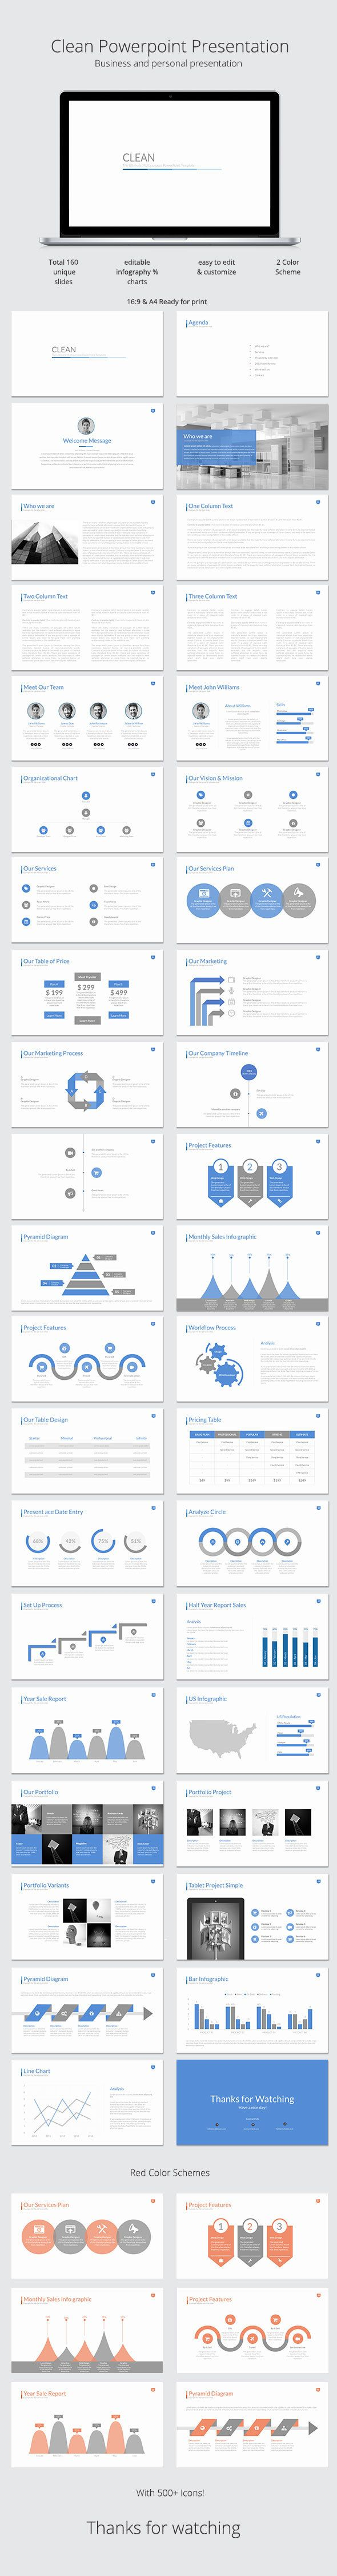 Coolmathgamesus  Terrific  Ideas About Powerpoint Presentations On Pinterest With Fetching Clean Powerpoint Template With Breathtaking Powerpoint Shape Also Healthy Relationships Powerpoint In Addition Powerpoint Workflow And Roadmap In Powerpoint As Well As Properties Of Real Numbers Powerpoint Additionally Copy Pdf Into Powerpoint From Pinterestcom With Coolmathgamesus  Fetching  Ideas About Powerpoint Presentations On Pinterest With Breathtaking Clean Powerpoint Template And Terrific Powerpoint Shape Also Healthy Relationships Powerpoint In Addition Powerpoint Workflow From Pinterestcom